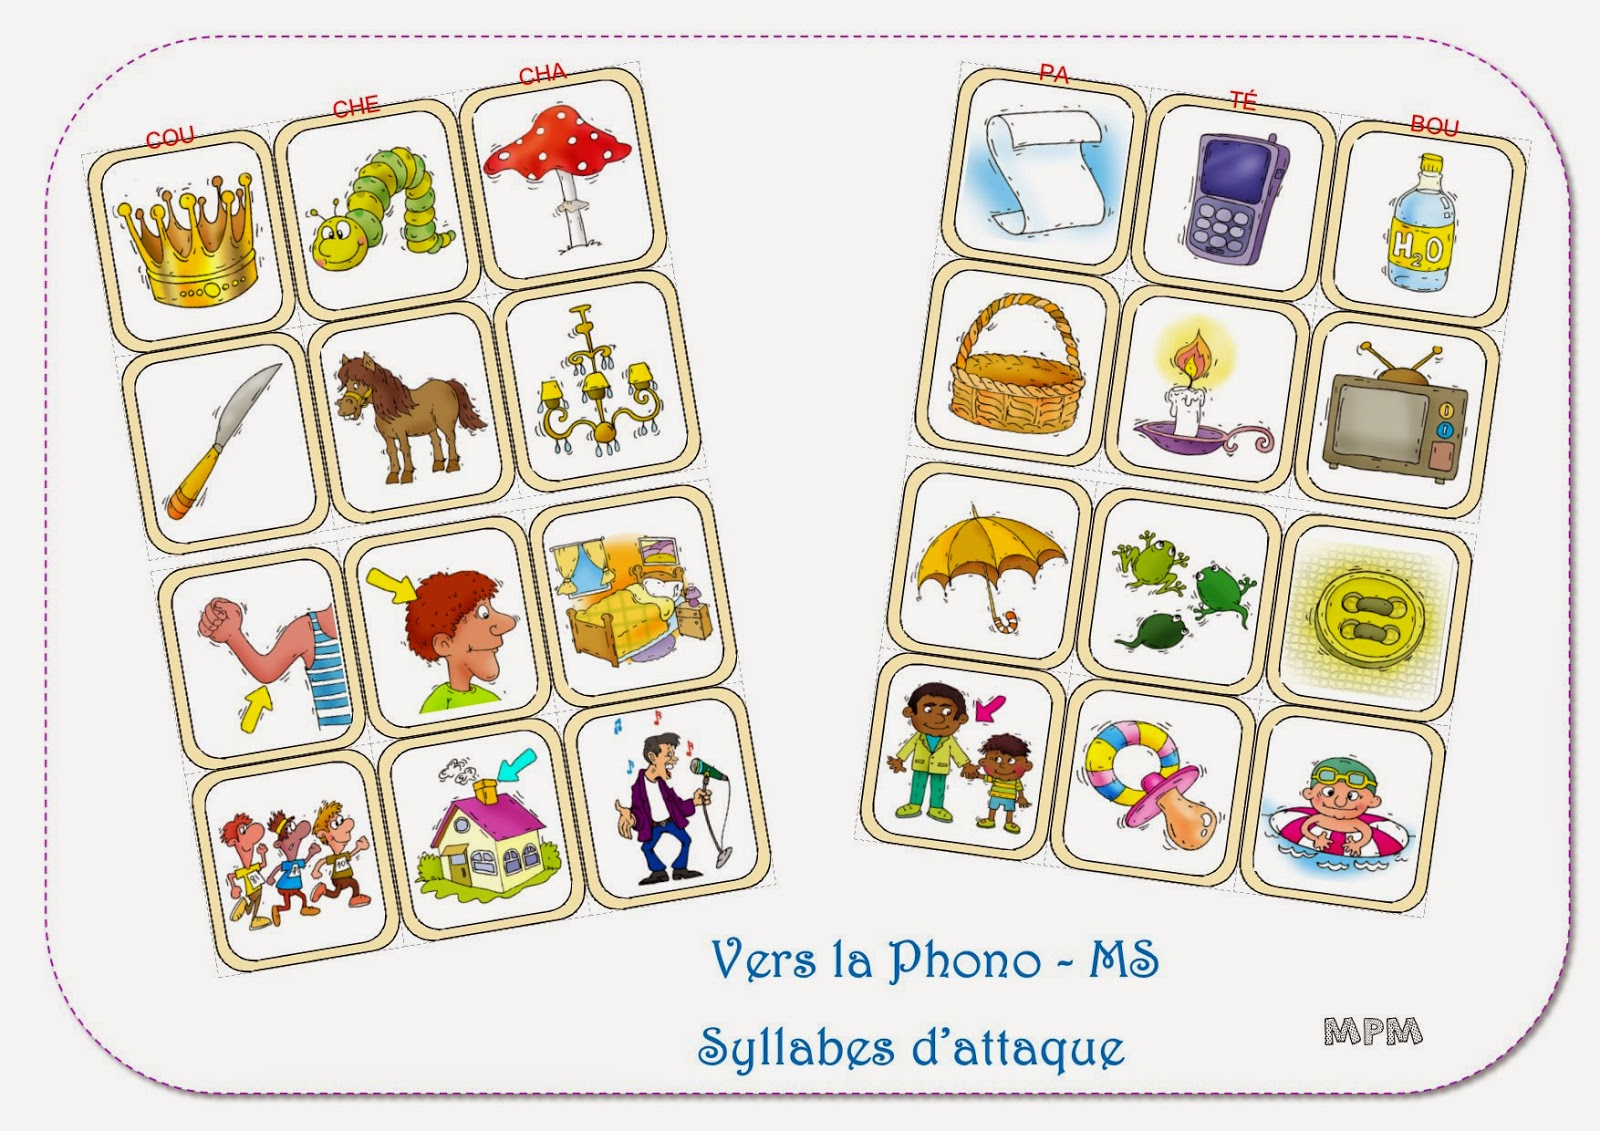 Phonologie MS jeu de syllabes